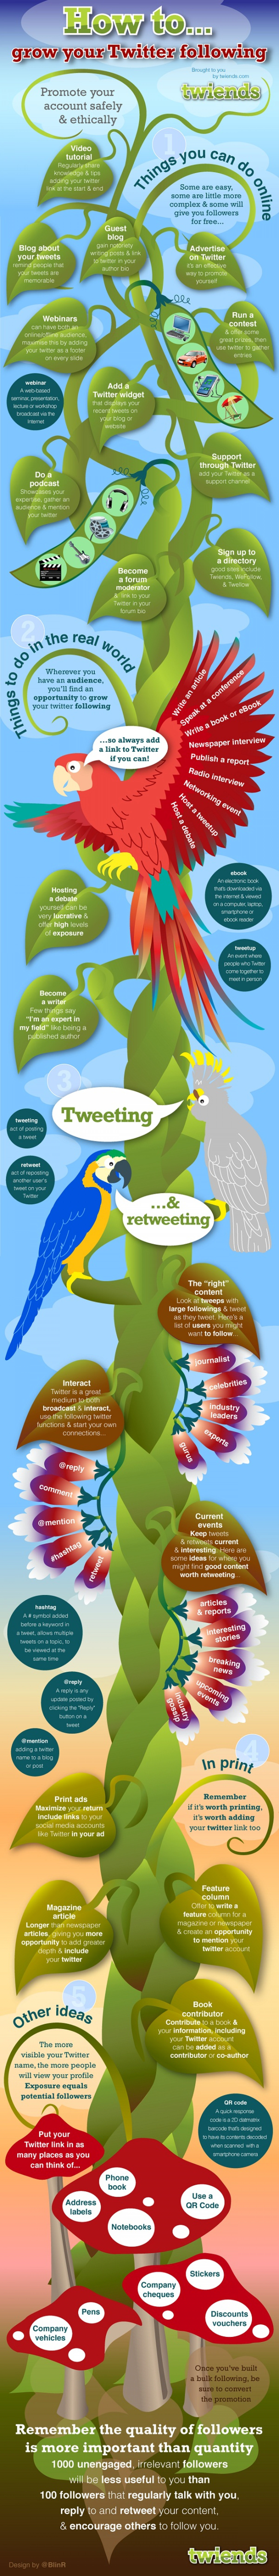 How To: Gain more Followers on Twitter Infographic